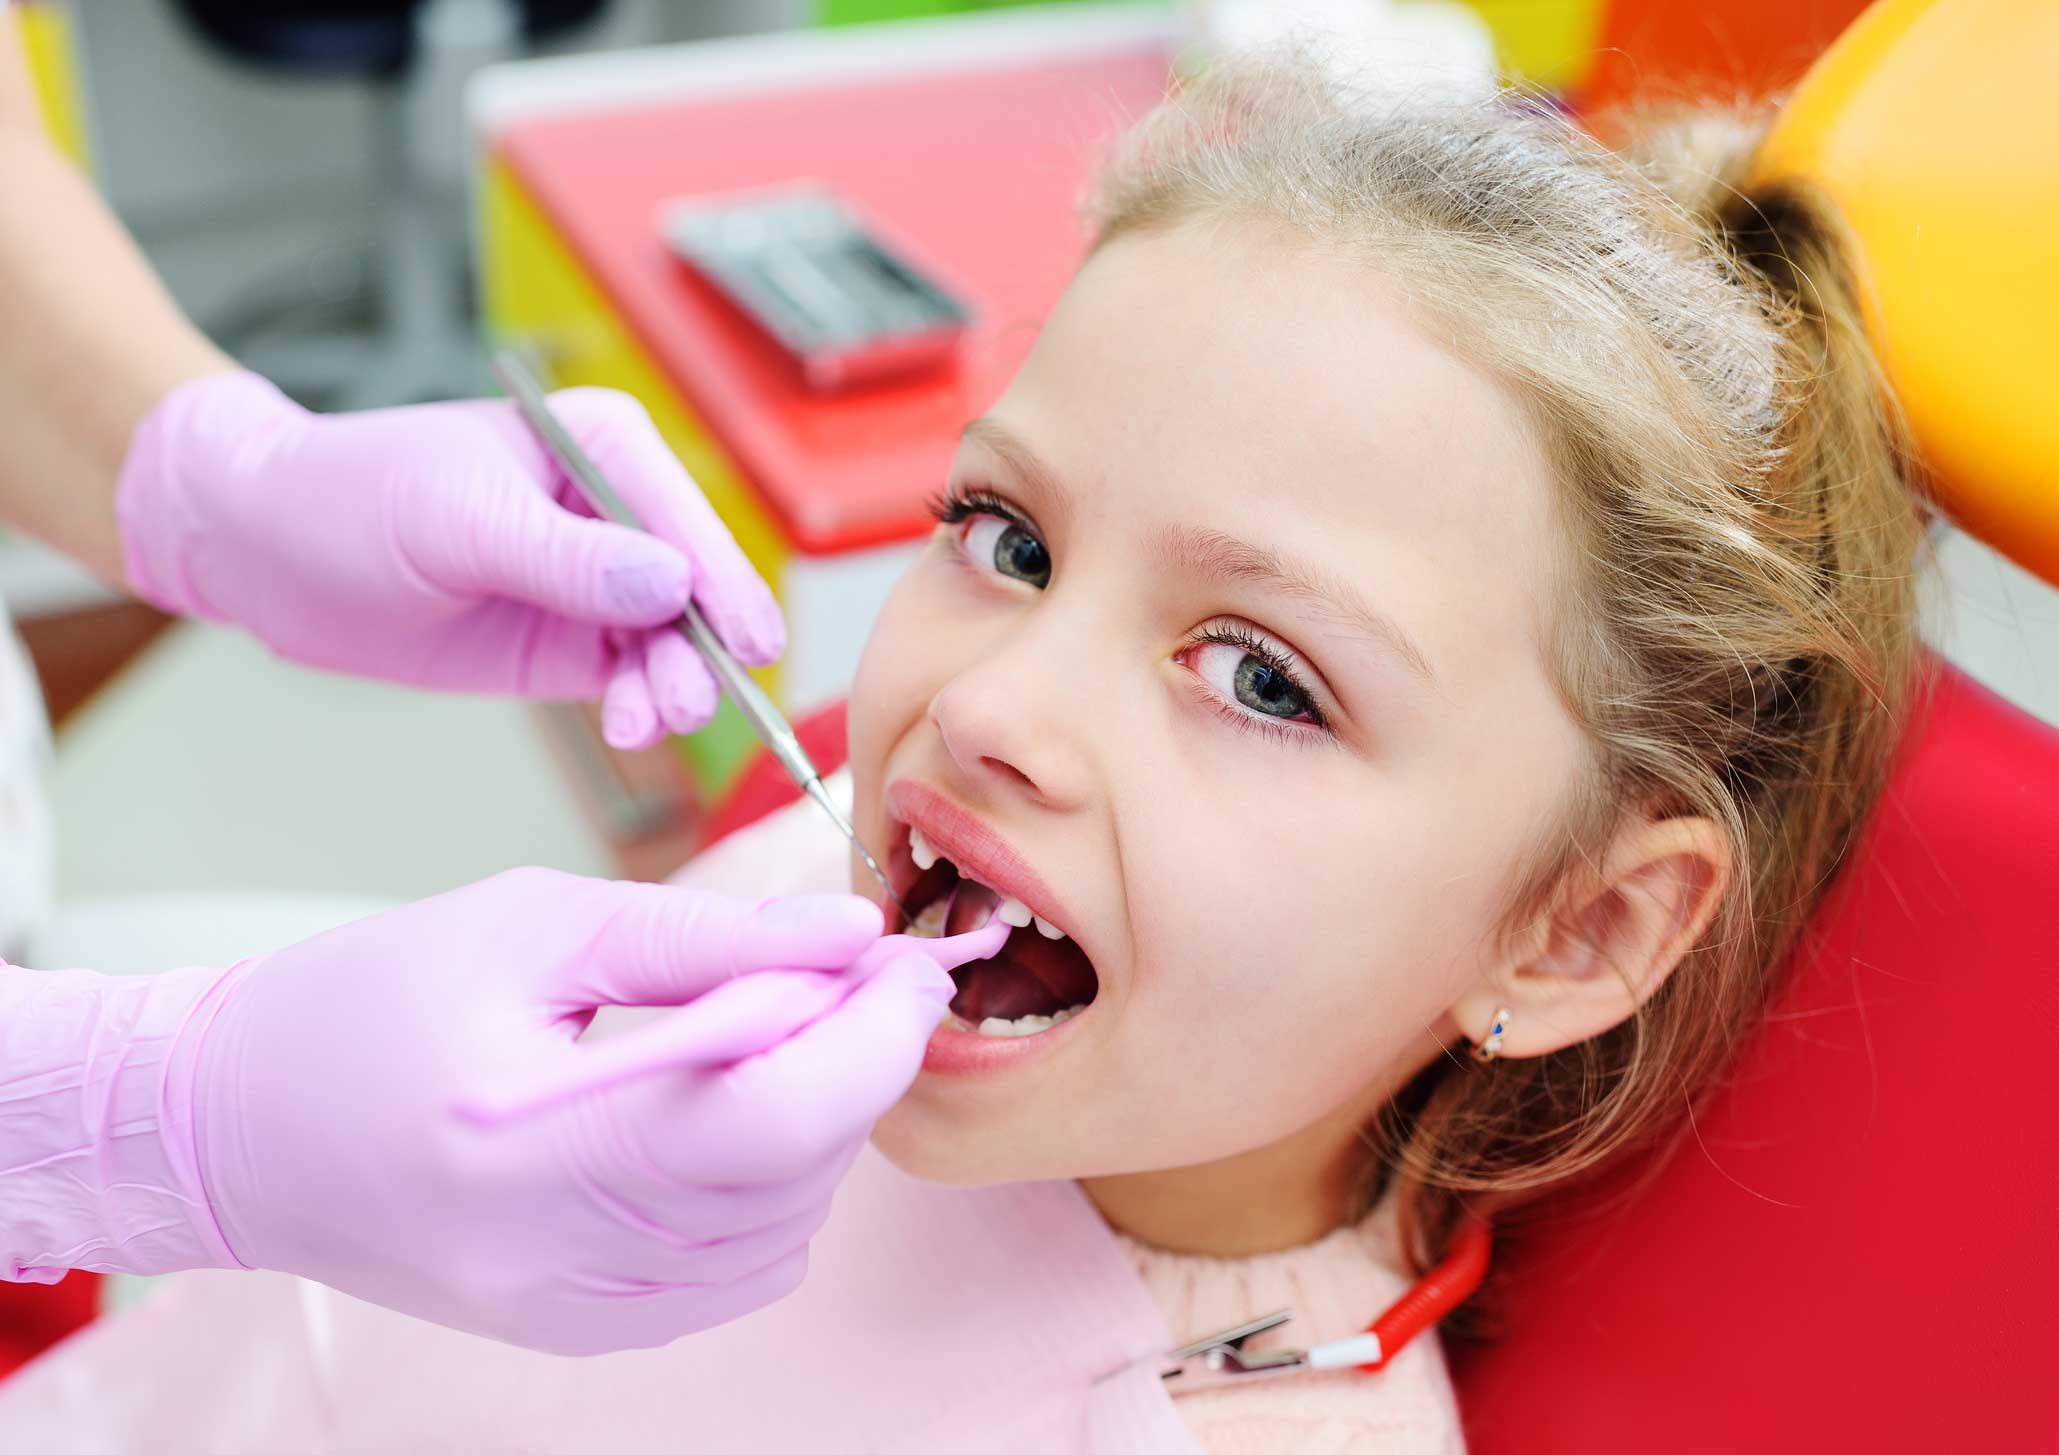 Dental implants kids nashville